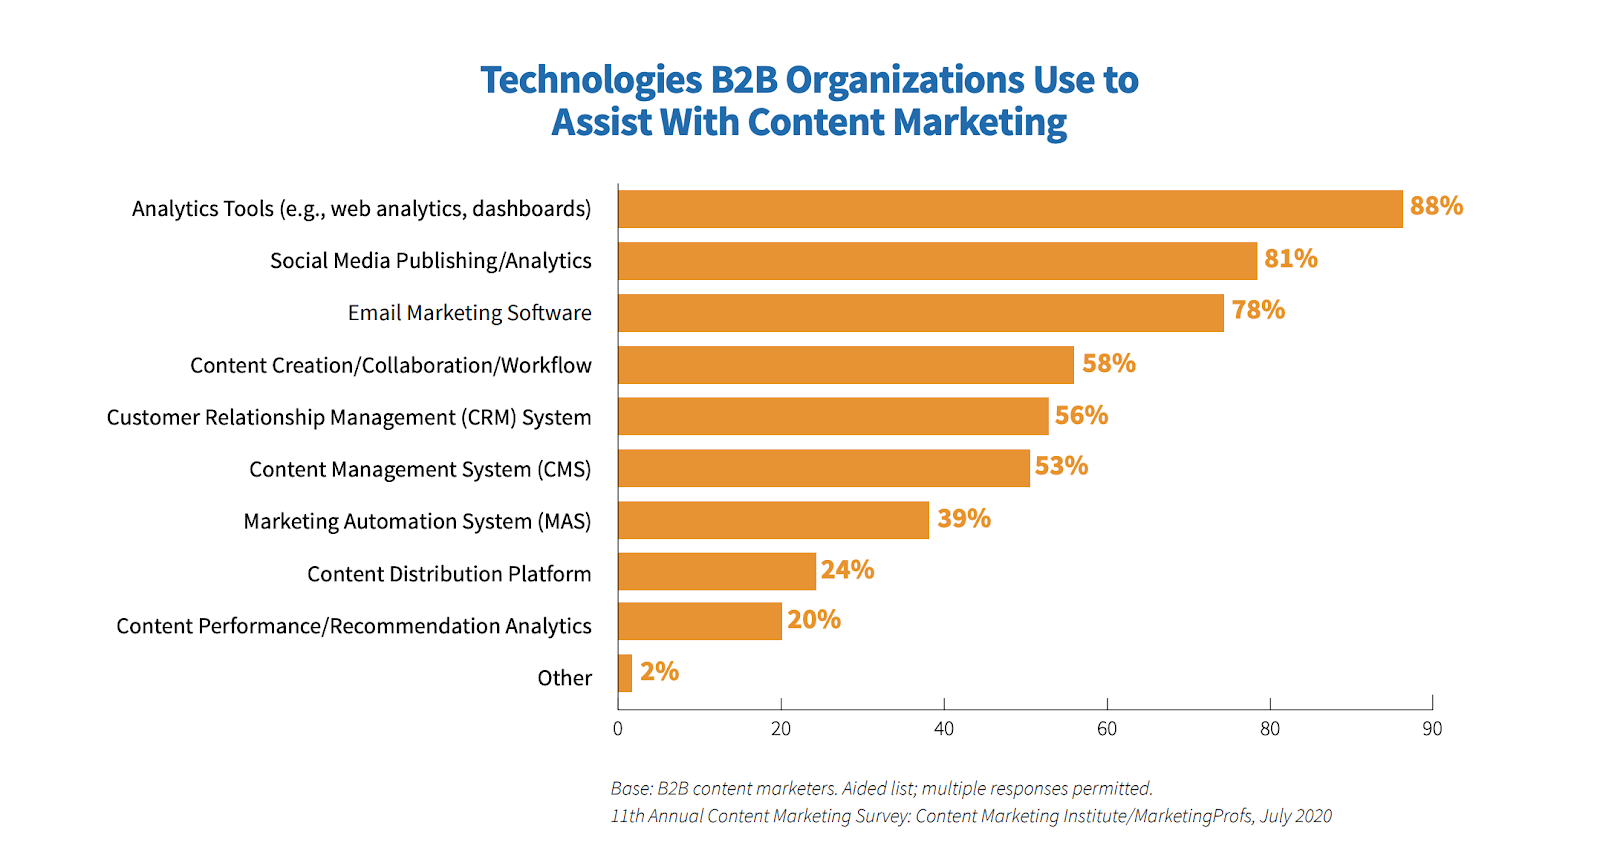 Technologies B2B orgnaizations use to assist with content marketing